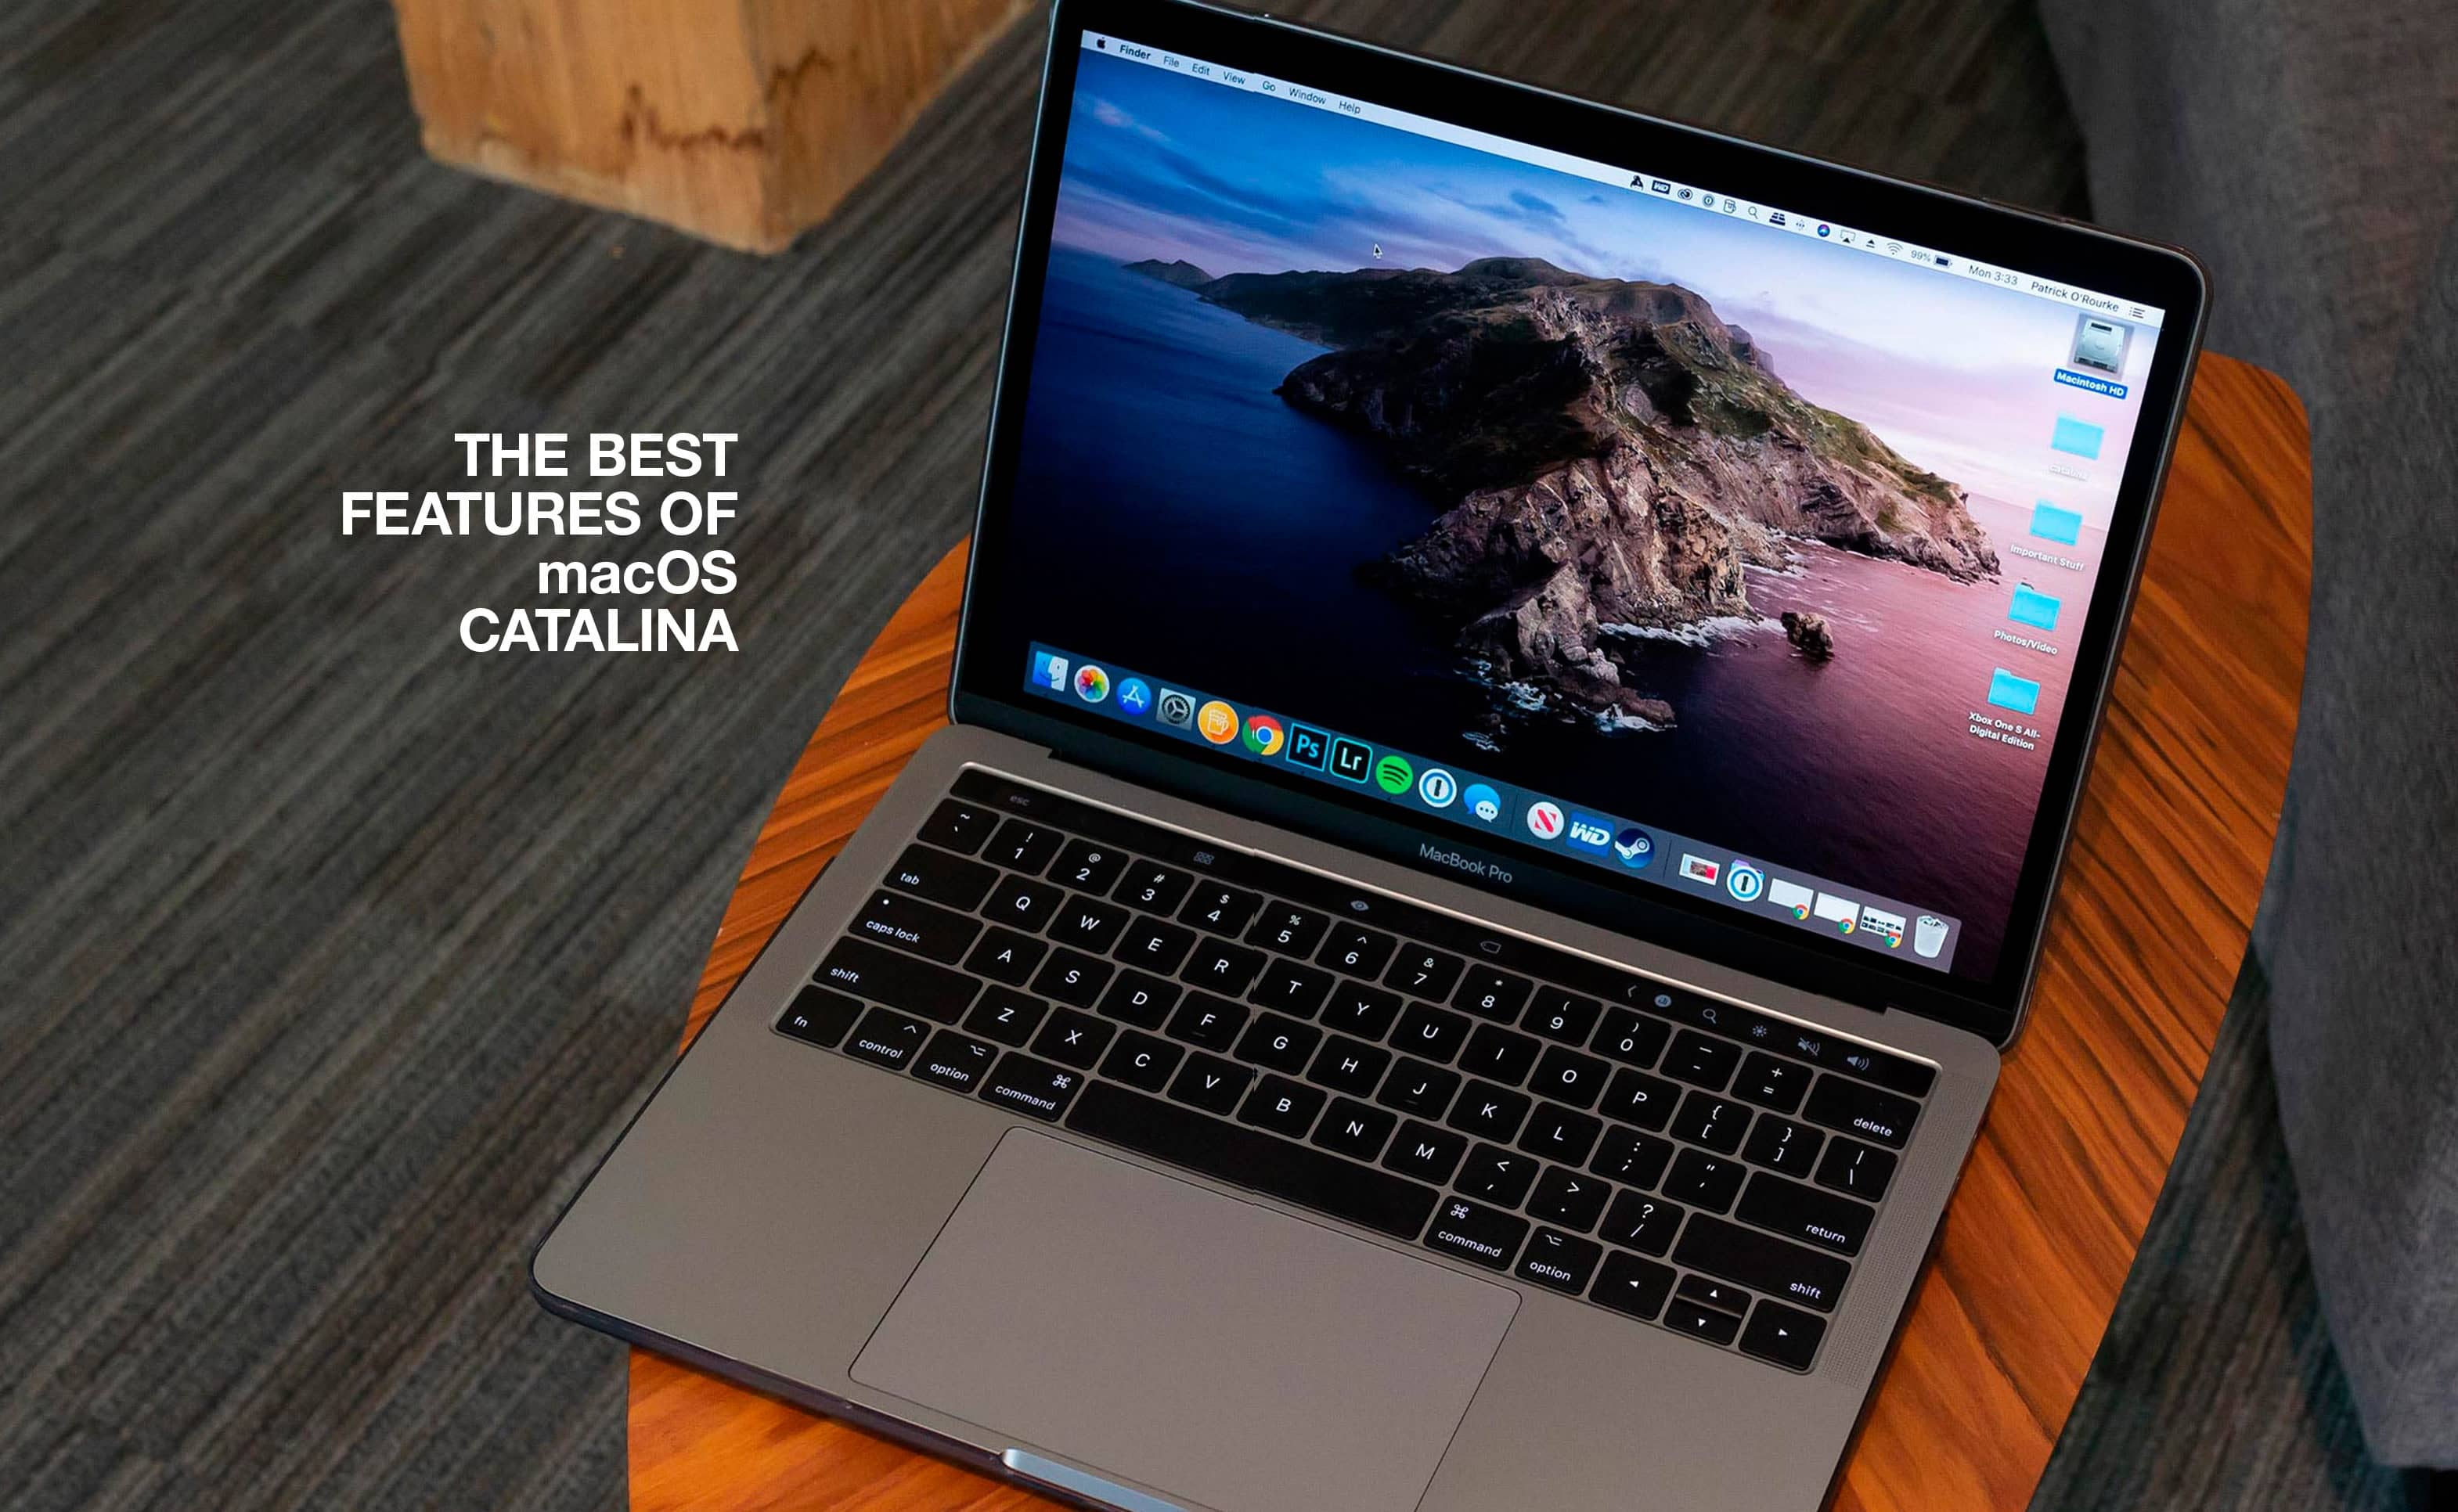 The Best Features Of macOS Catalina